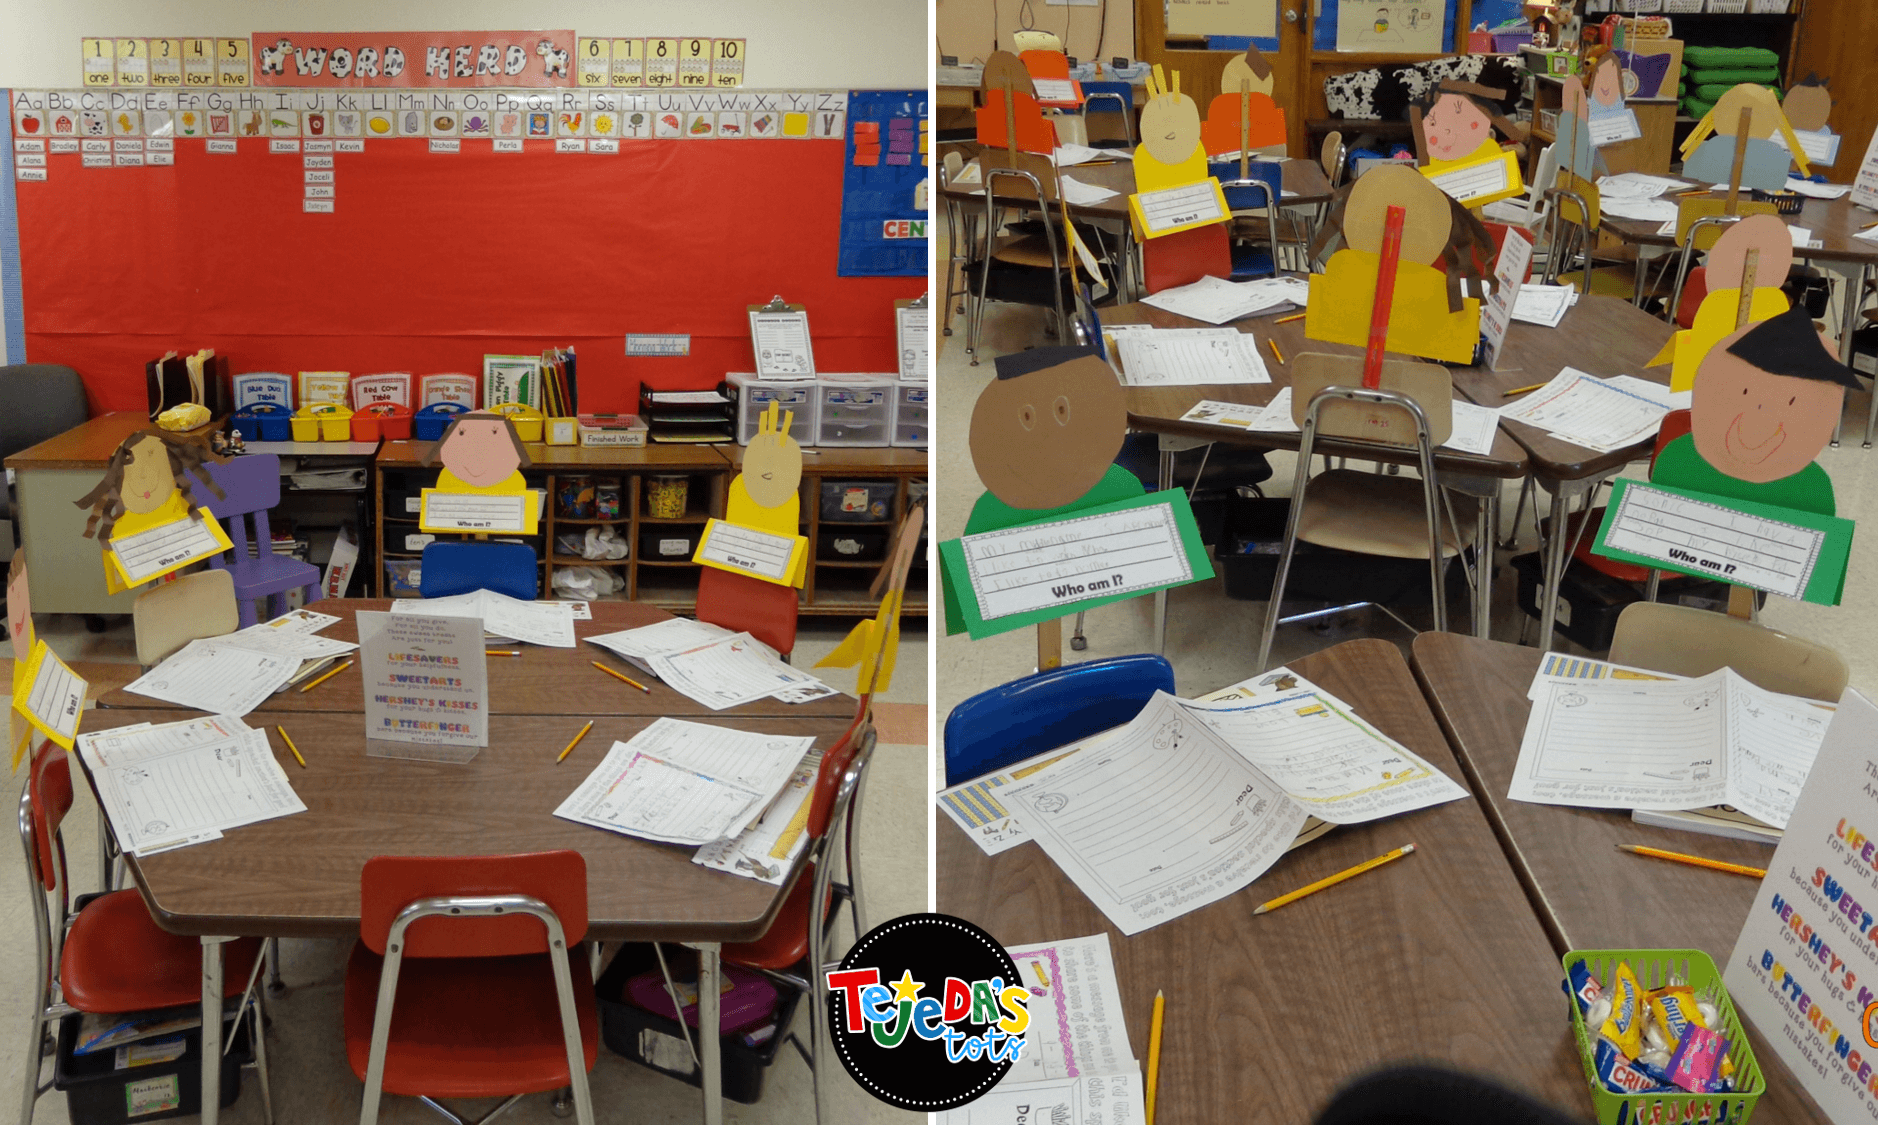 Stand-in students! So cute for Meet the Teacher Night! Have kids create themselves and use a ruler and tape to attach to seats. Parents try to find their child to find their seats. #tejedastots